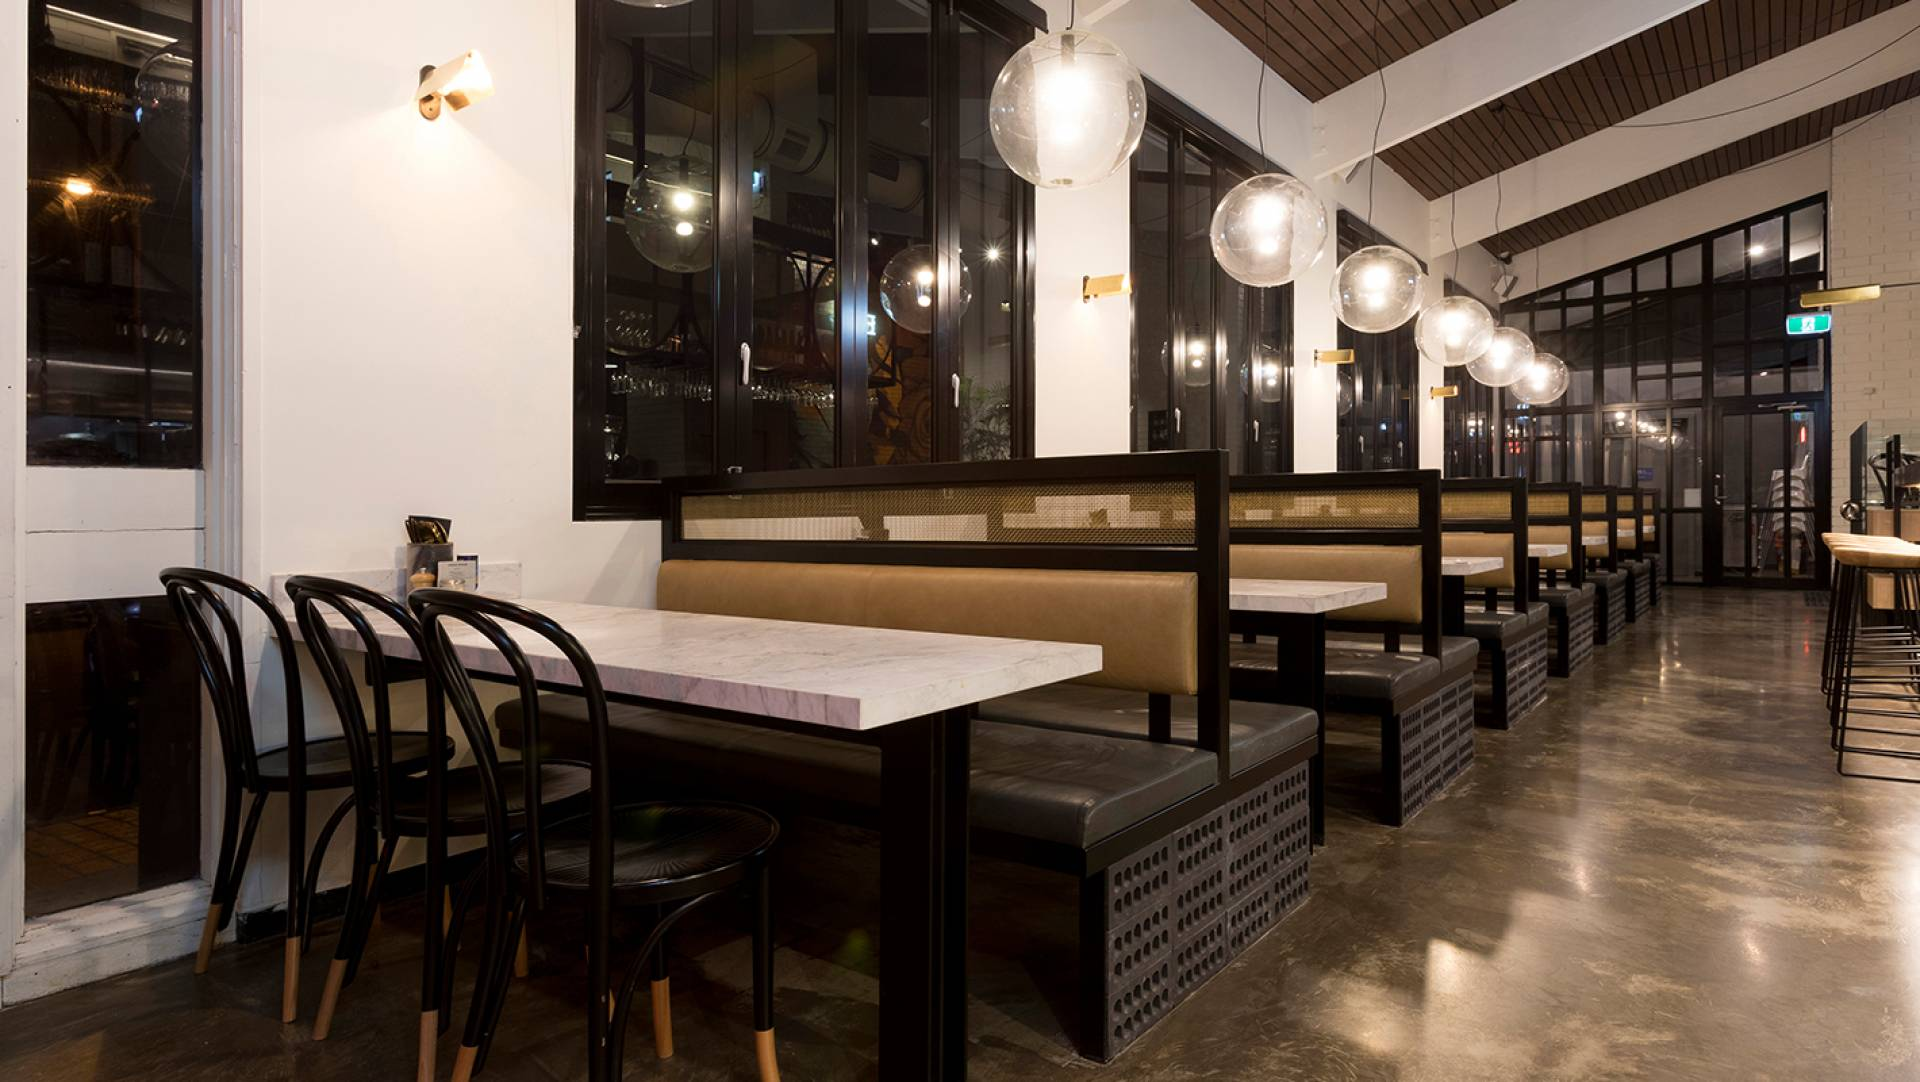 Cafe Design Melbourne - Riddik Cafe Bar Restaurant Designer